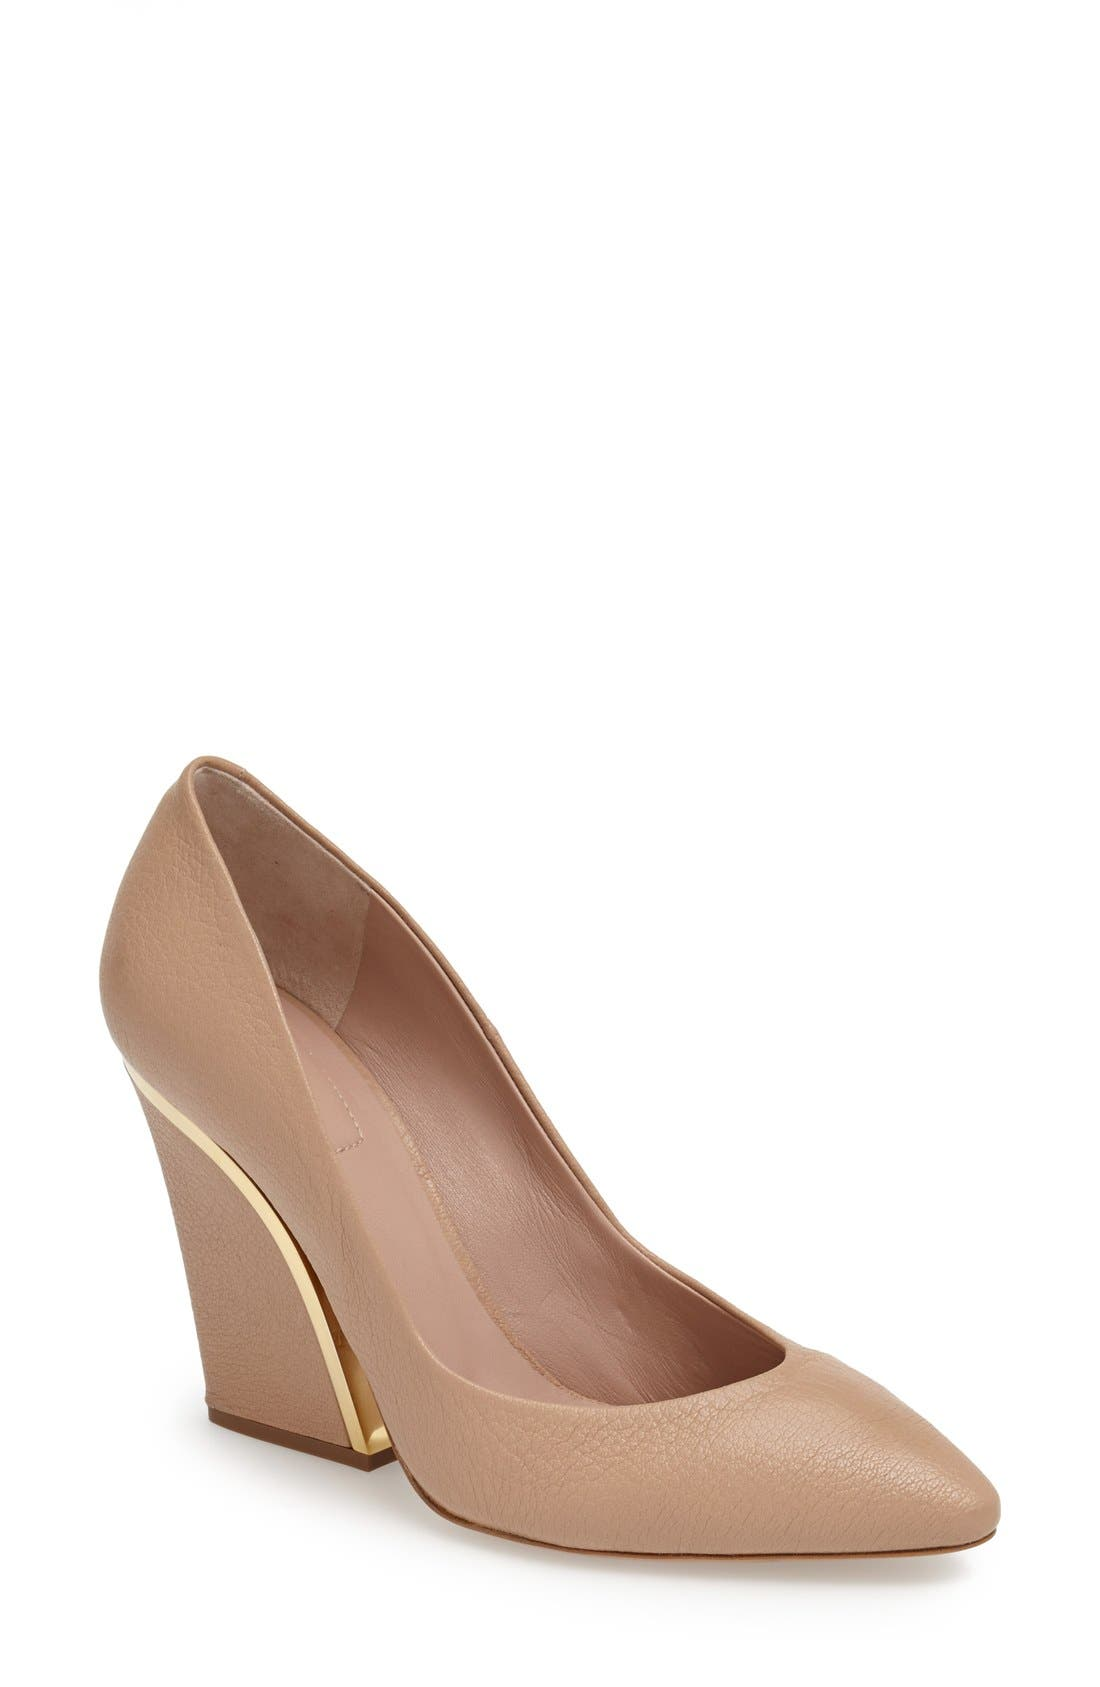 Alternate Image 1 Selected - Chloé 'Beckie' Pointy Toe Pump (Women)